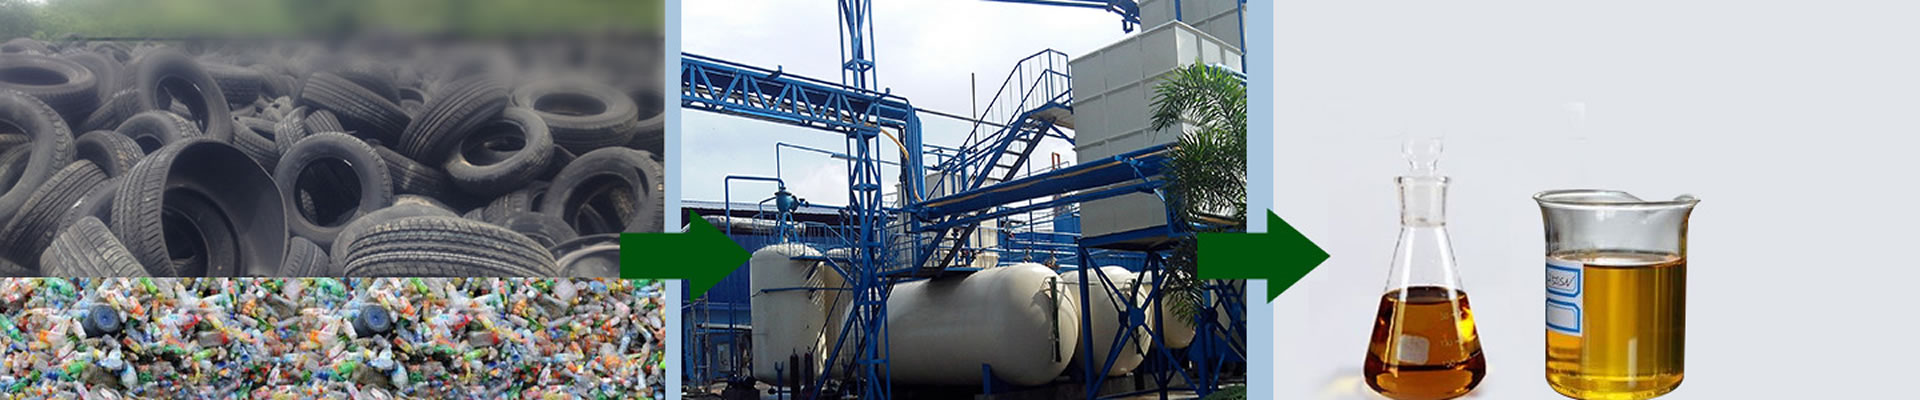 China Waste Tyre Pyrolysis Plant Manufacturers